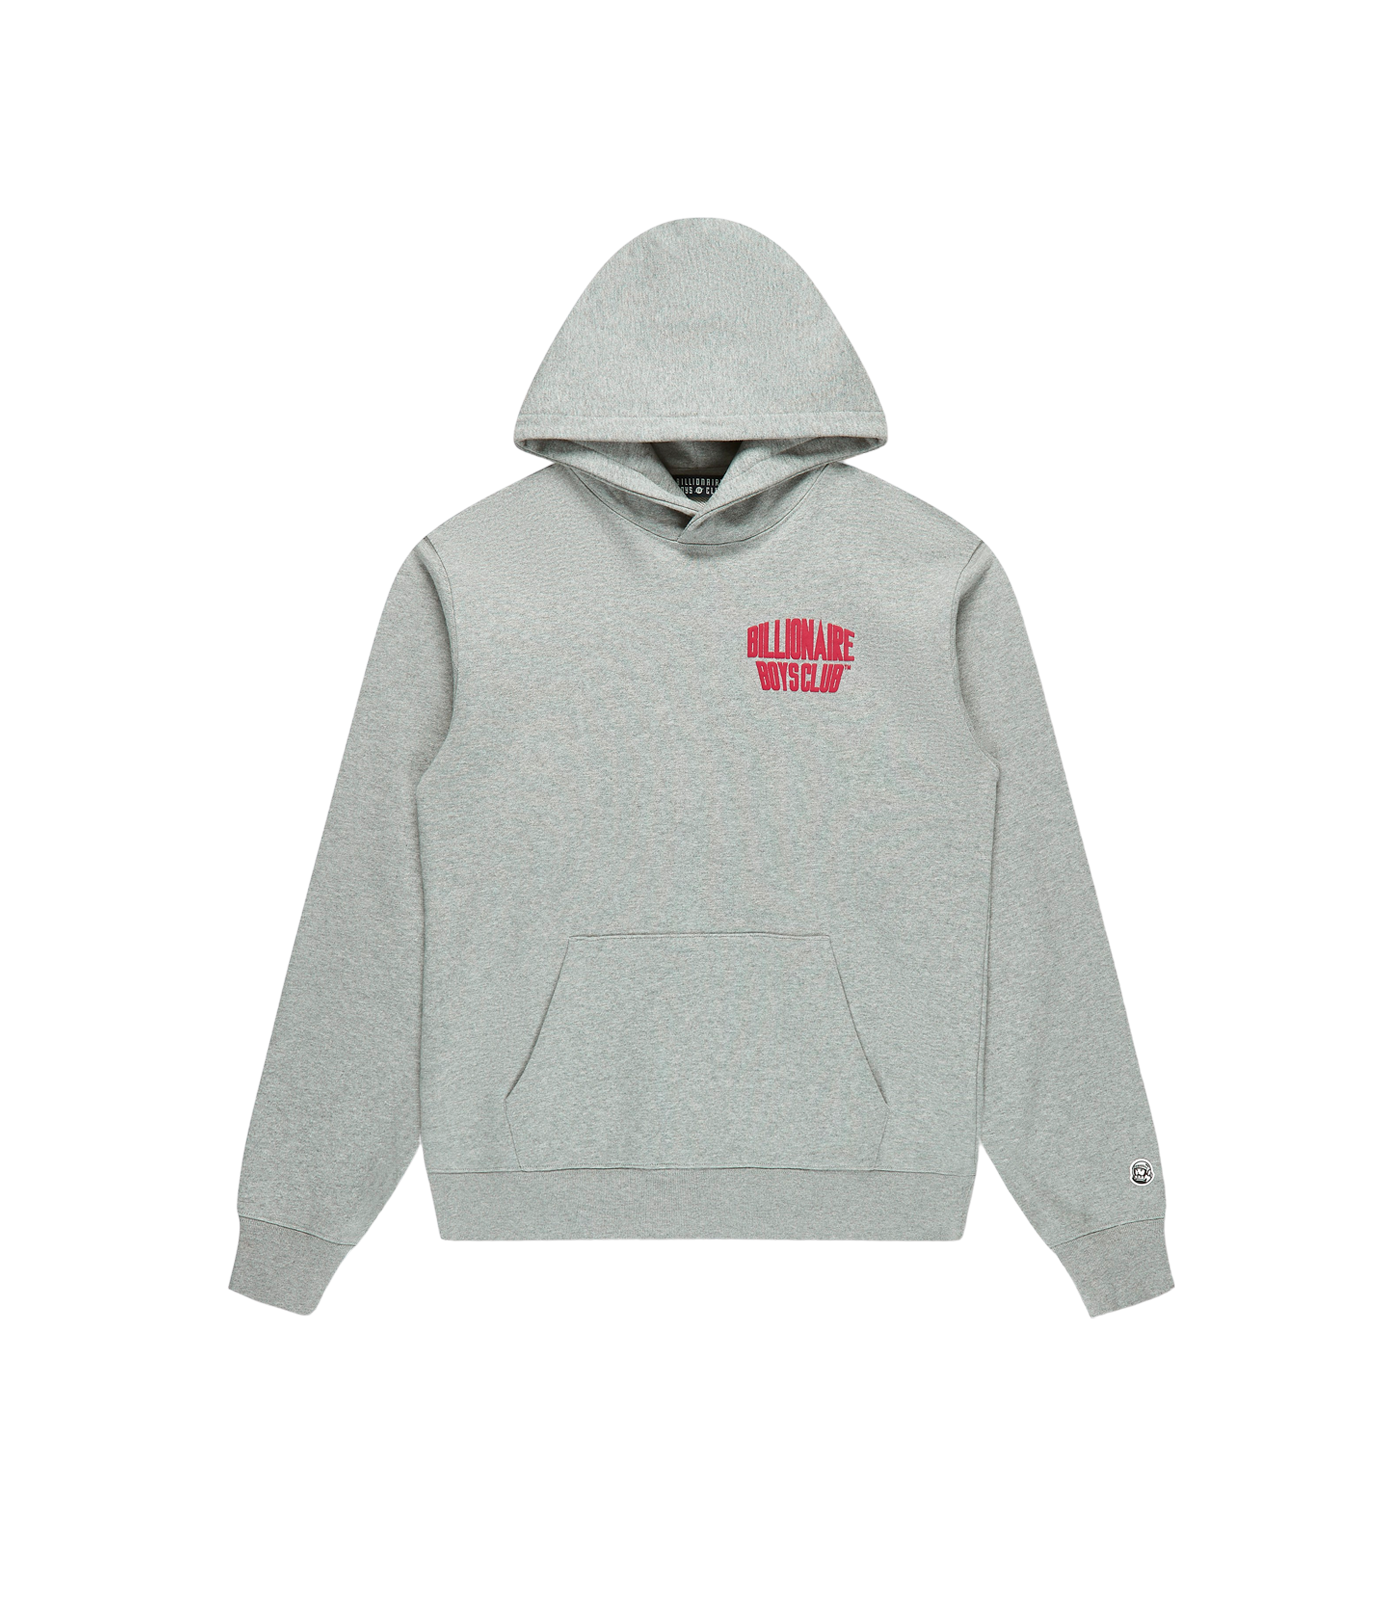 MOUNTAIN LOGO POPOVER HOOD - GREY